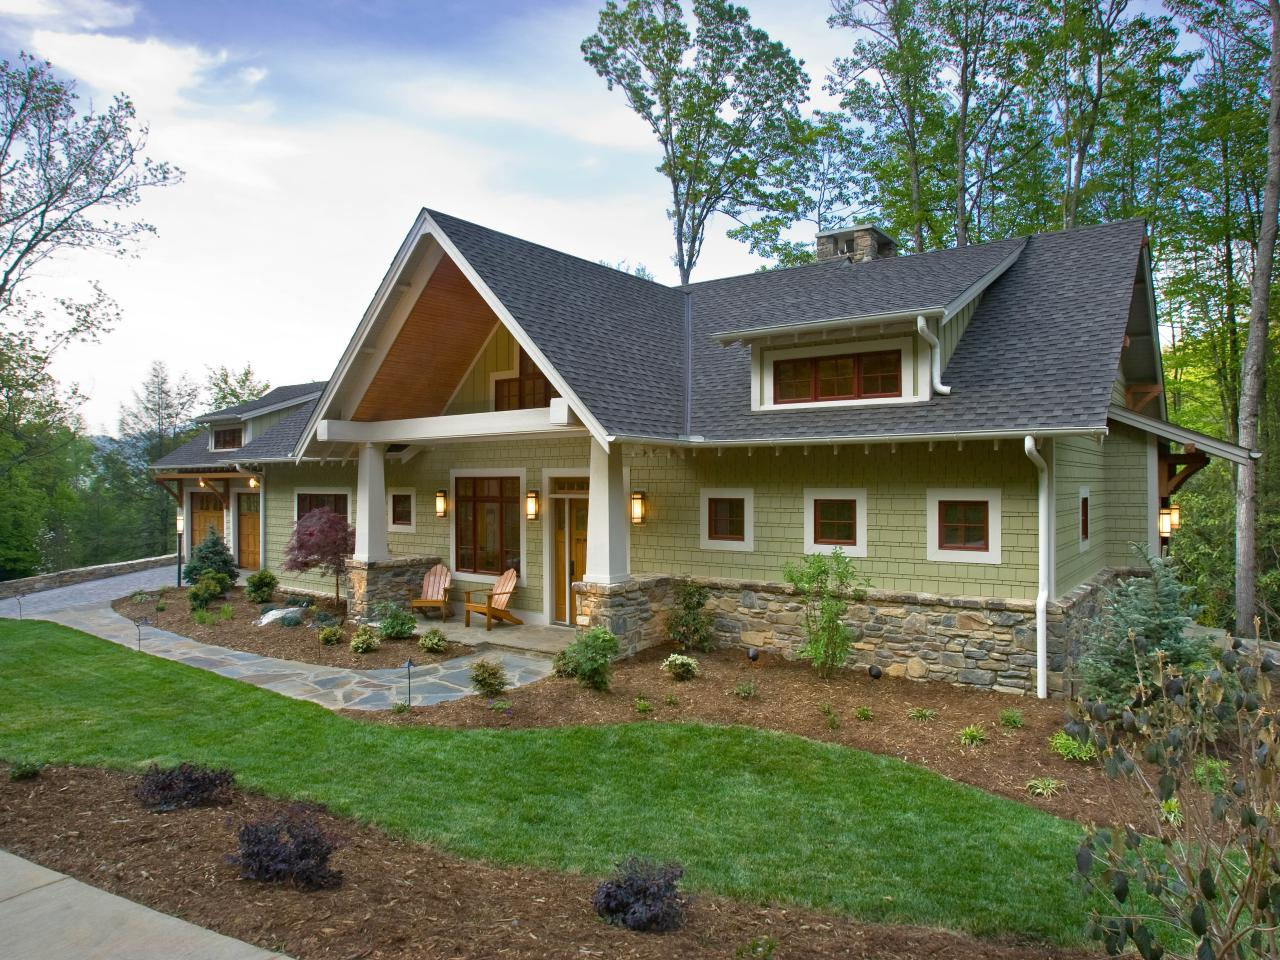 modern craftsman style home exterior ranch - Craftsman Ranch Home Exterior